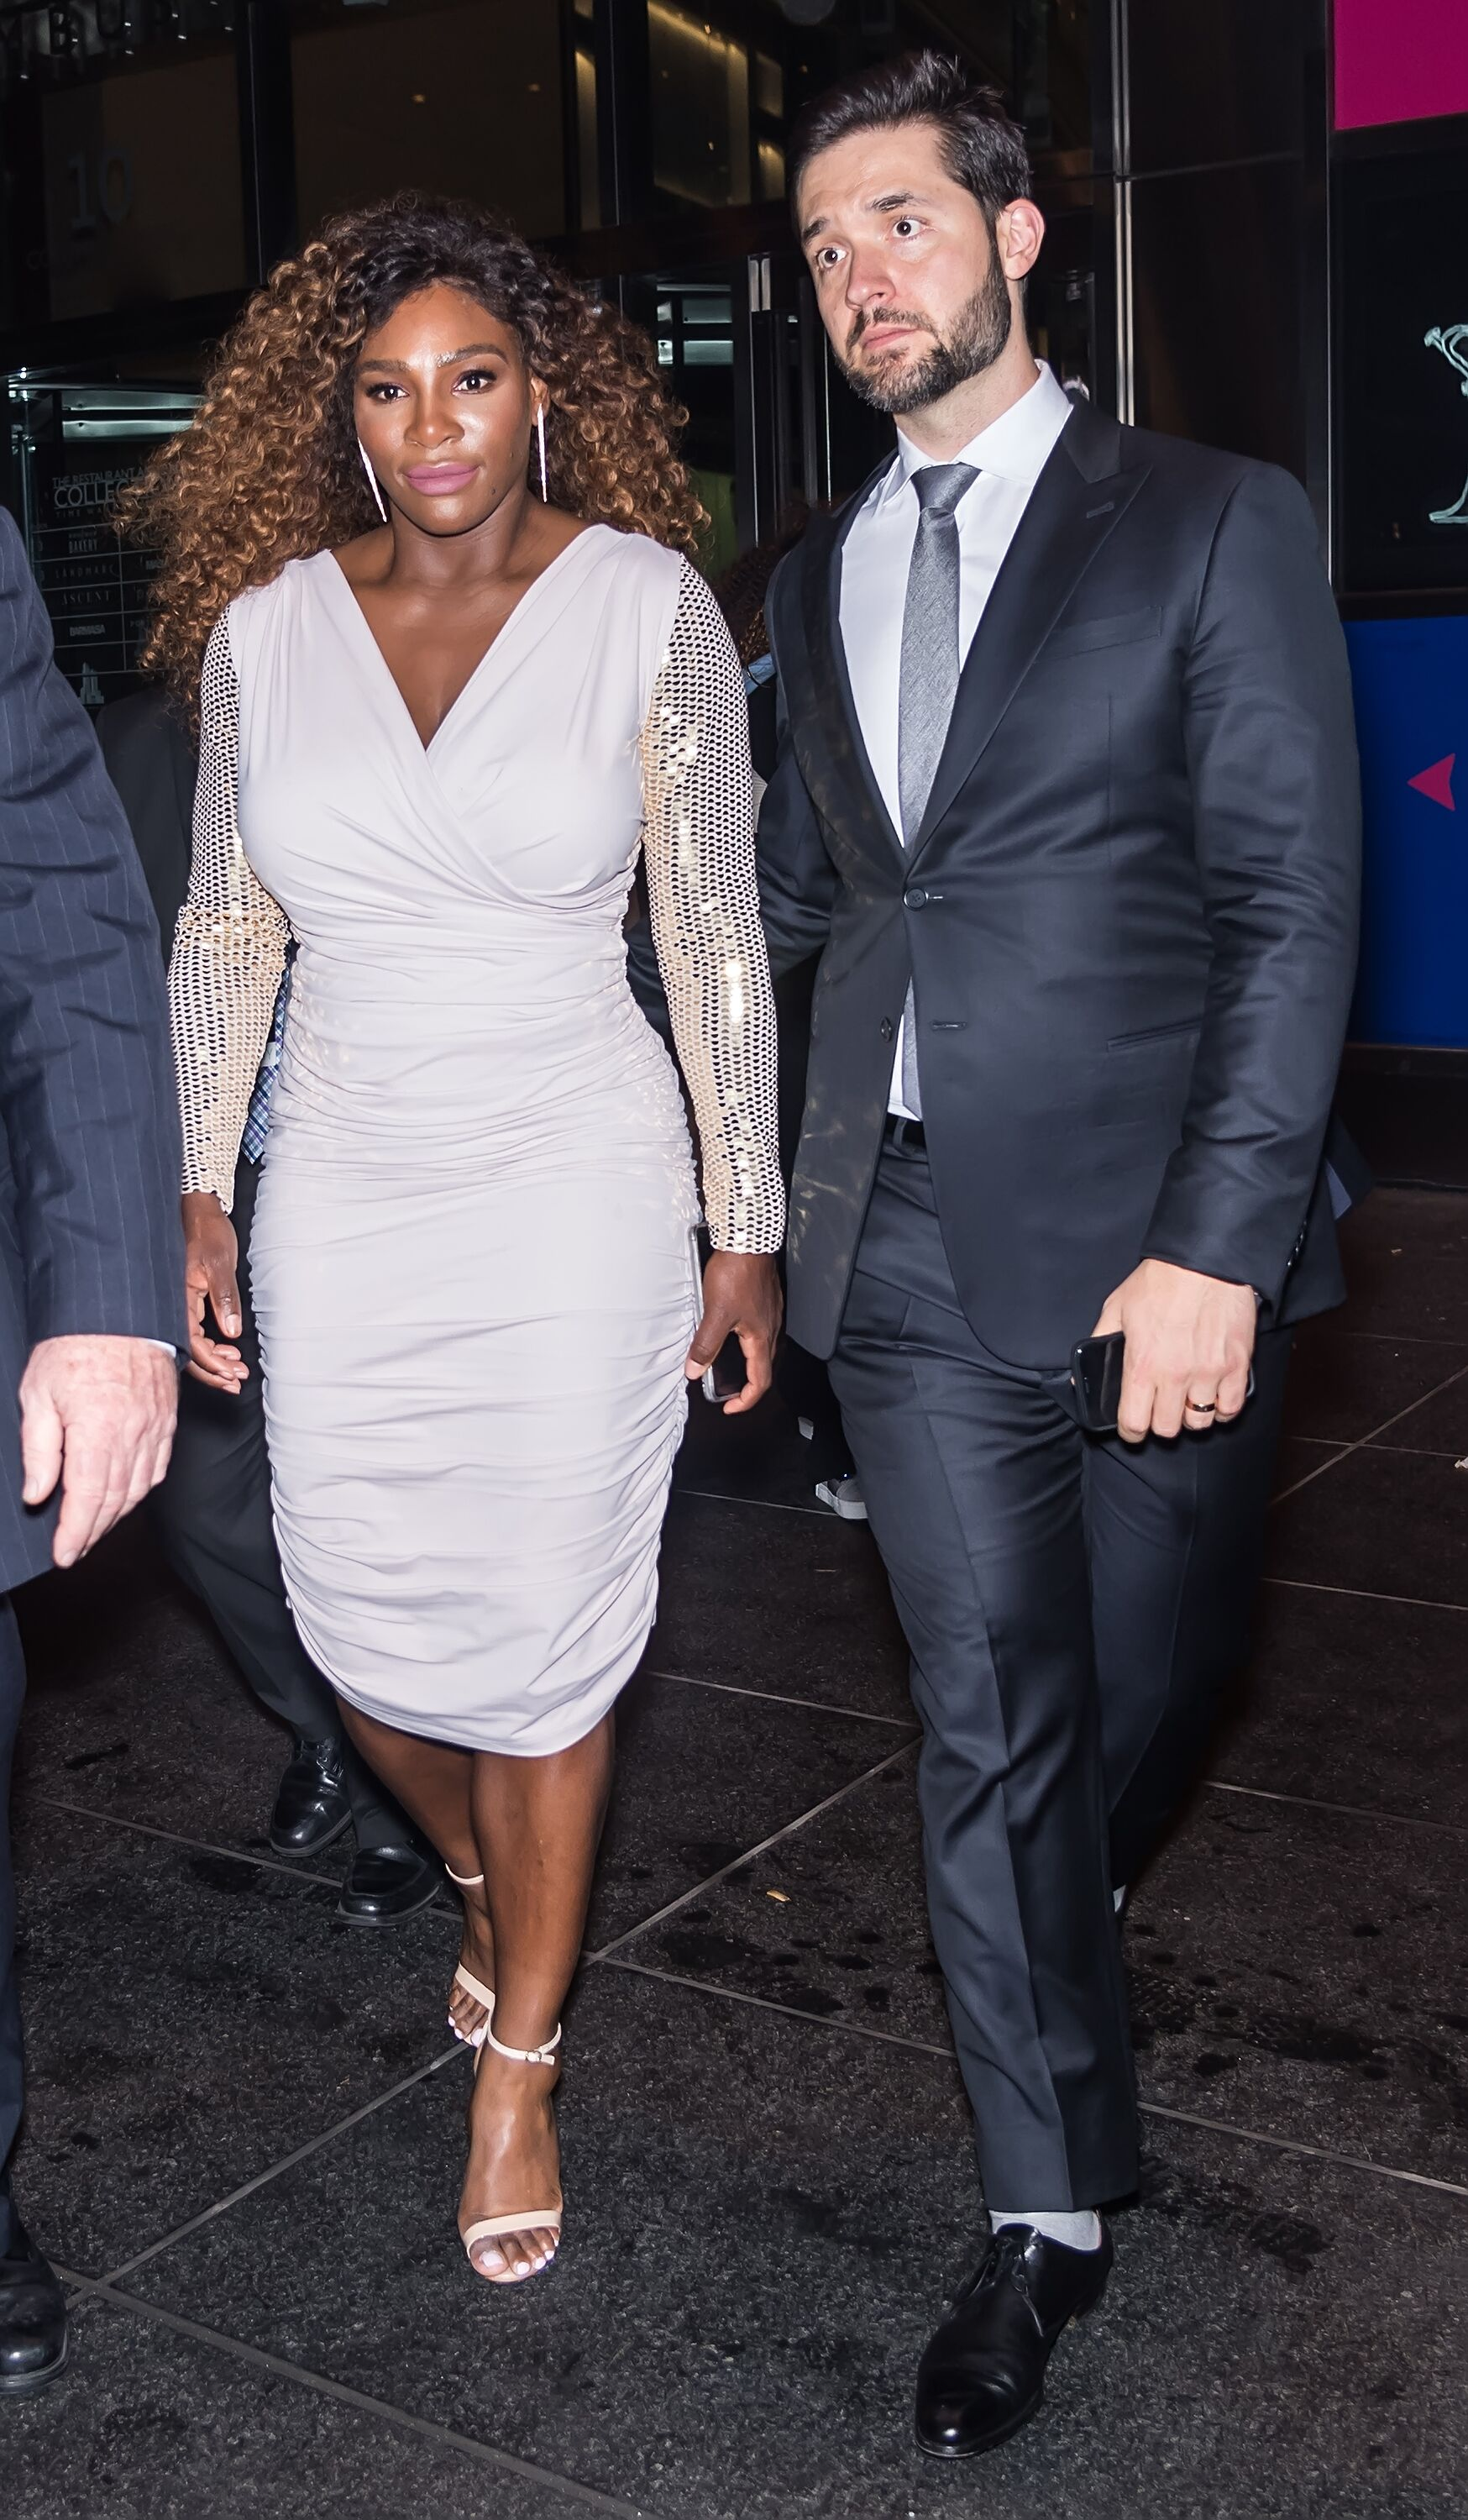 Serena Williams and Alexis Ohanian during a night out | Source: Getty Images/GlobalImagesUkraine